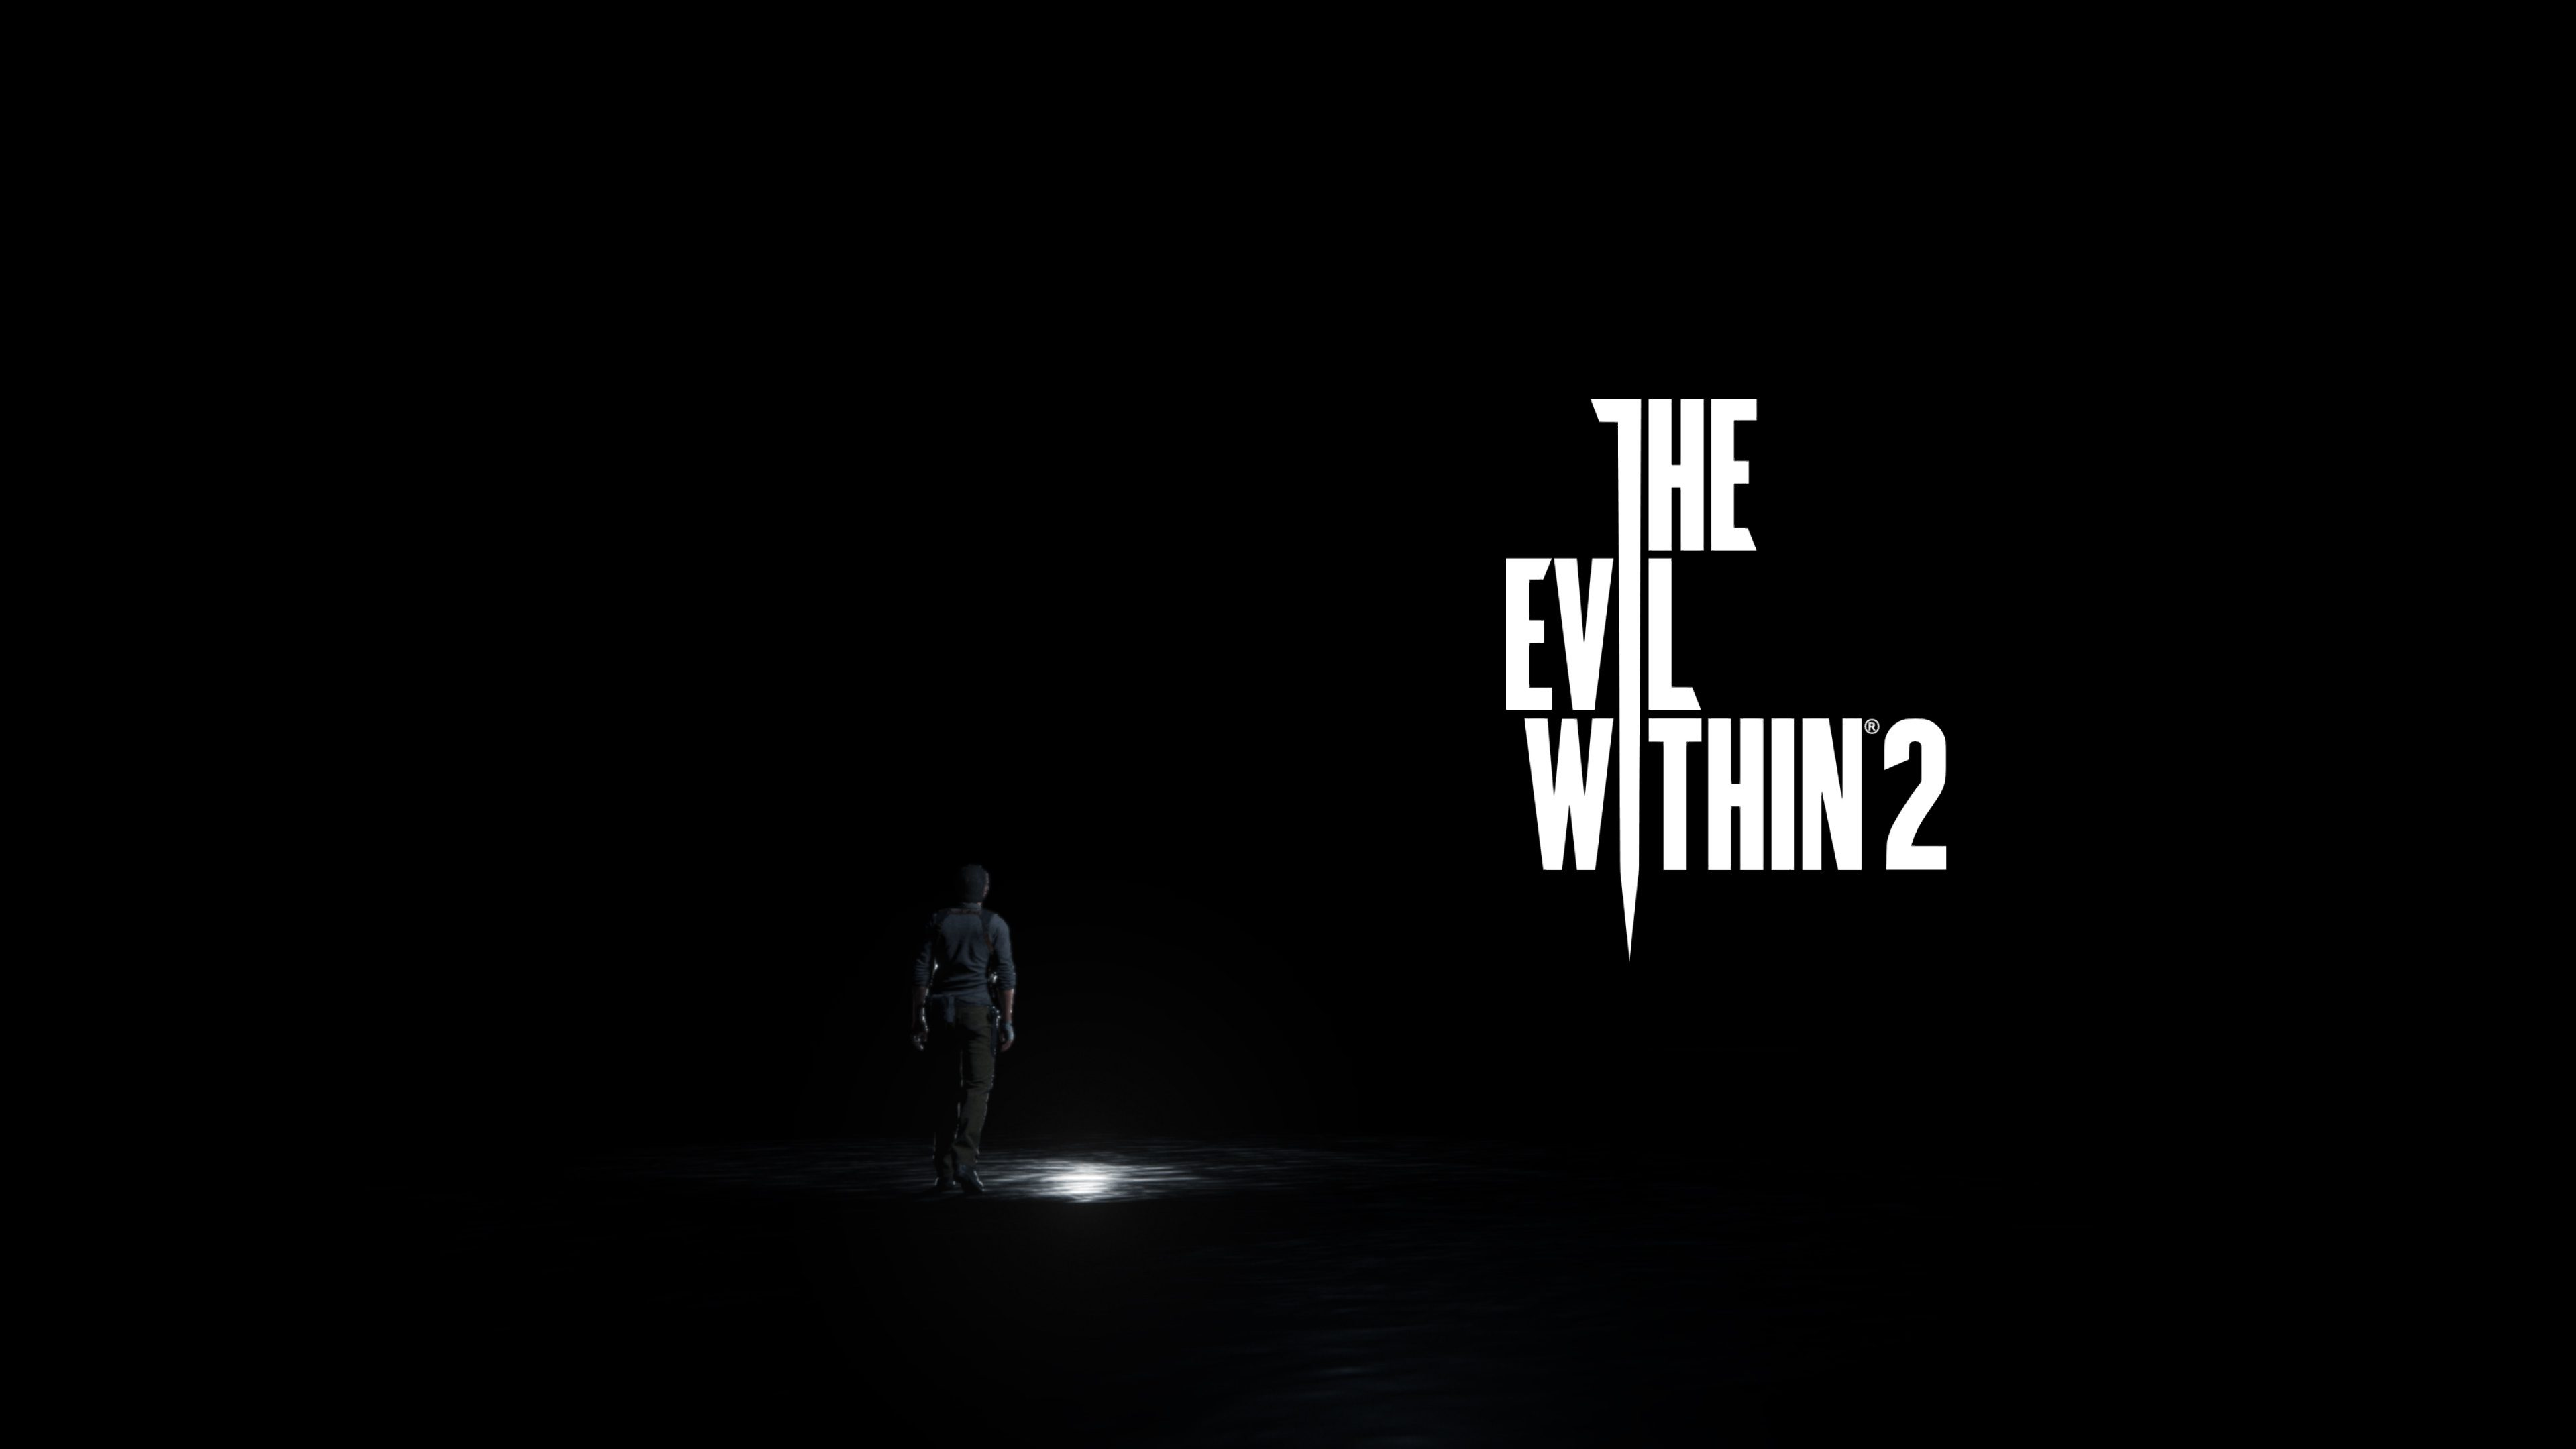 Wallpaper The Evil Within 2 4k Games 12718: 1920x1080 The Evil Within 2 Game Laptop Full HD 1080P HD